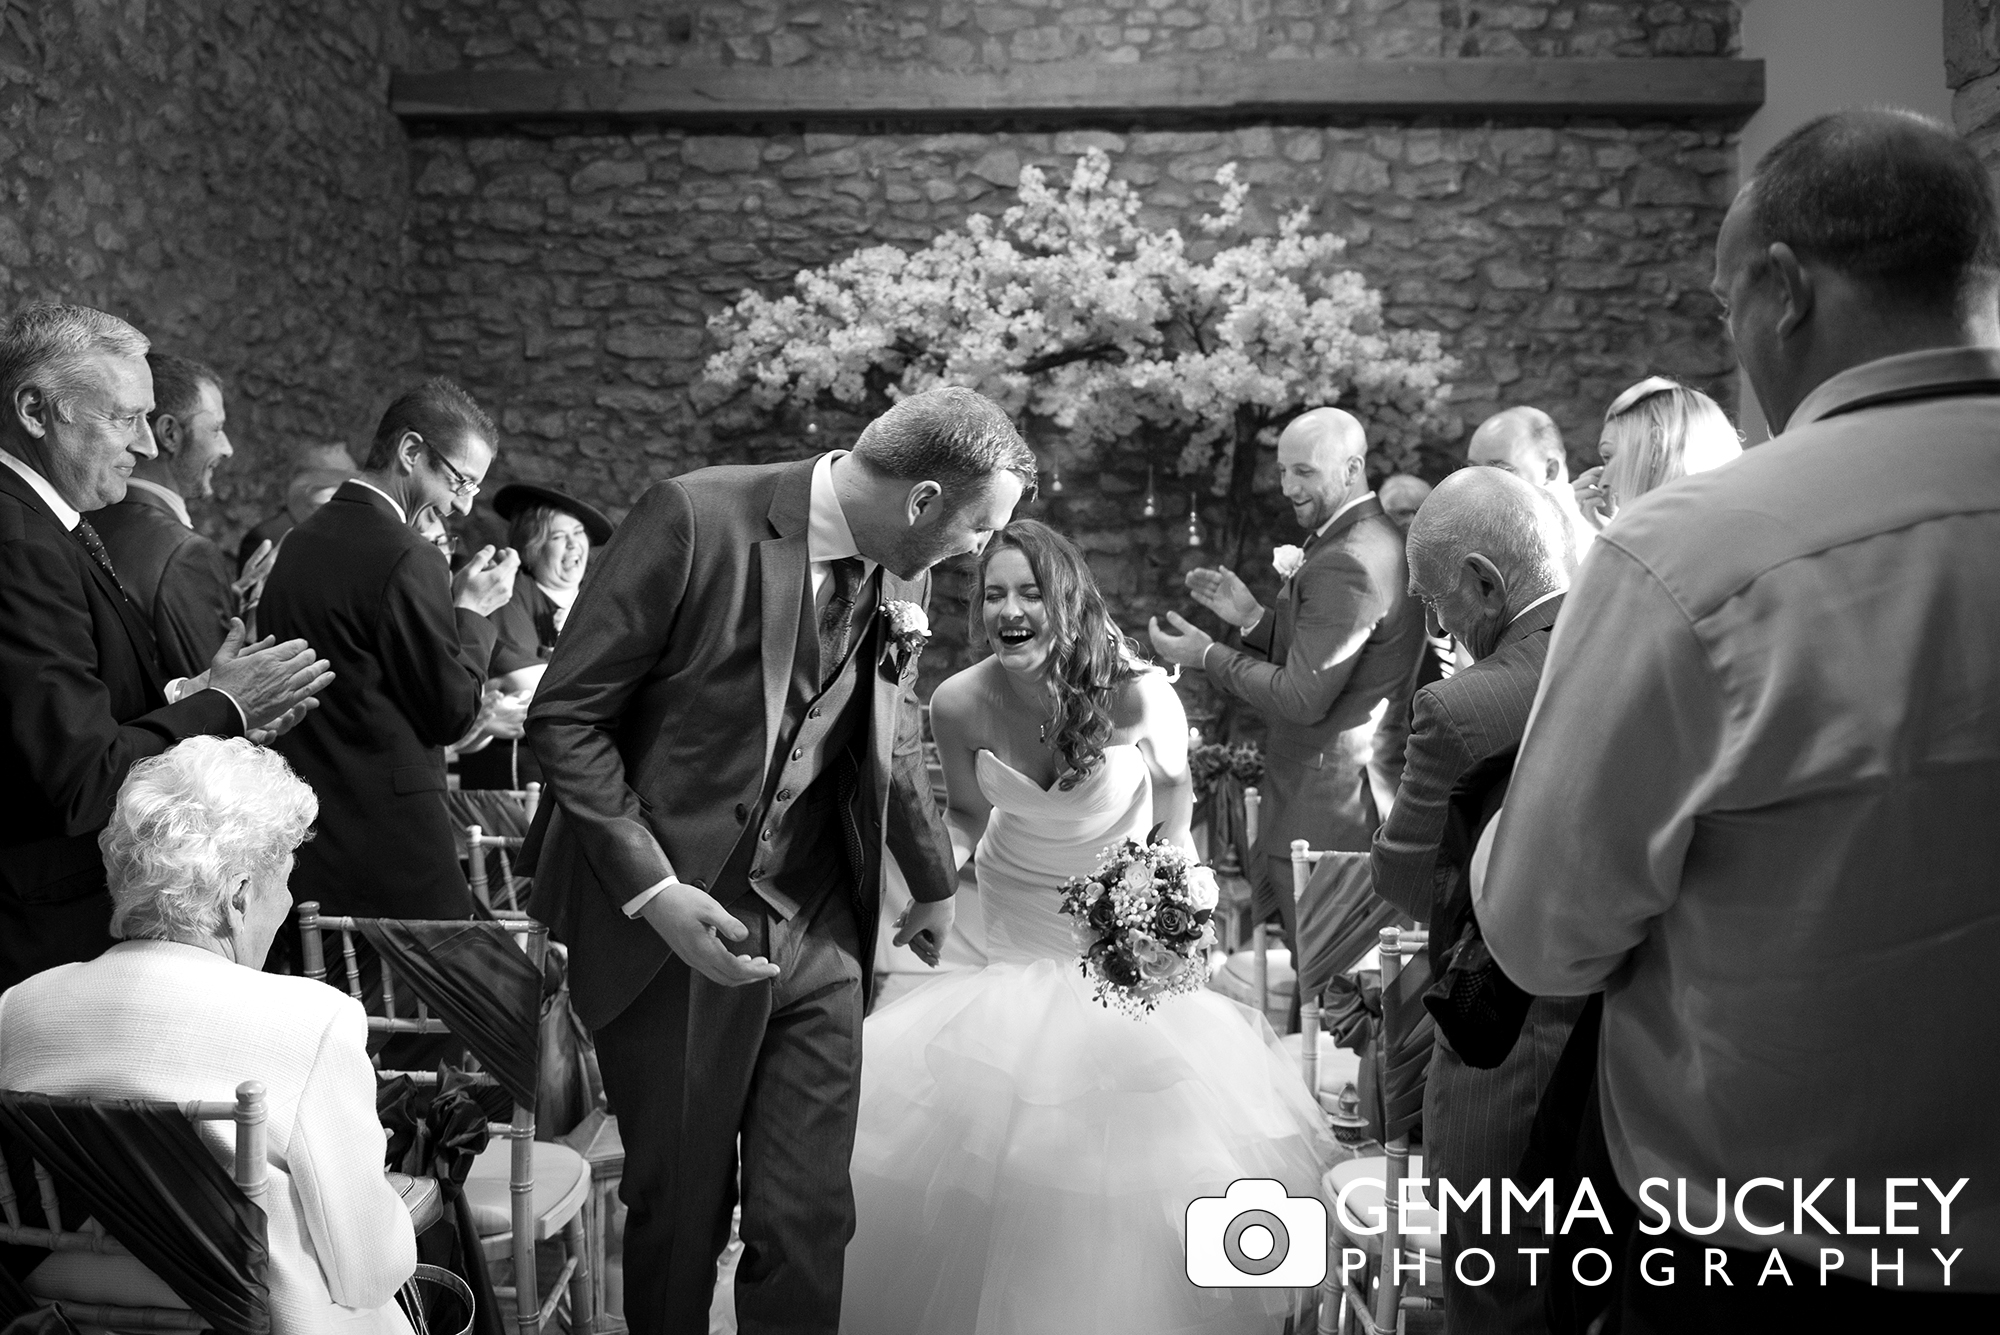 Bride and groom just married at Coniston Hotel in Skipton